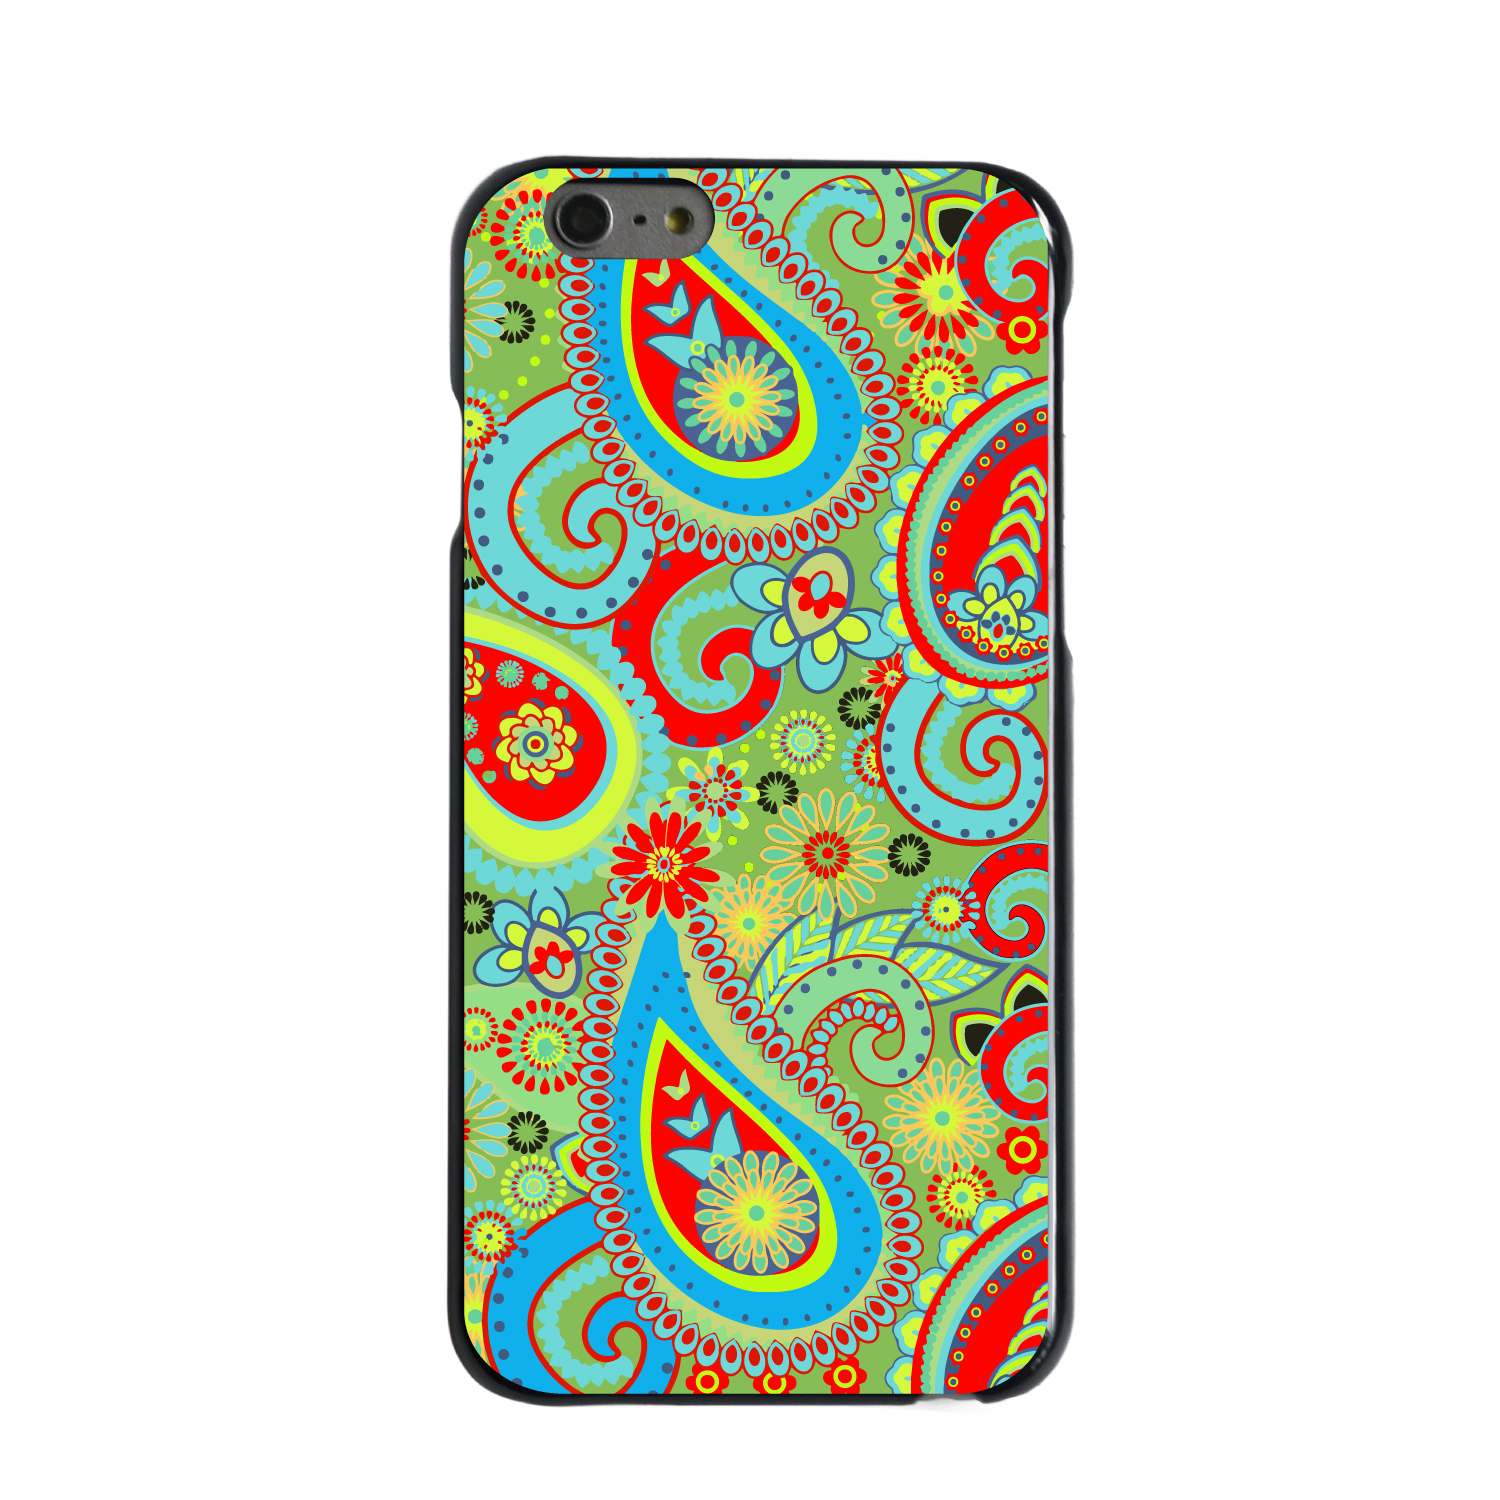 "CUSTOM Black Hard Plastic Snap-On Case for Apple iPhone 6 / 6S (4.7"" Screen) - Green Red Blue Paisley"